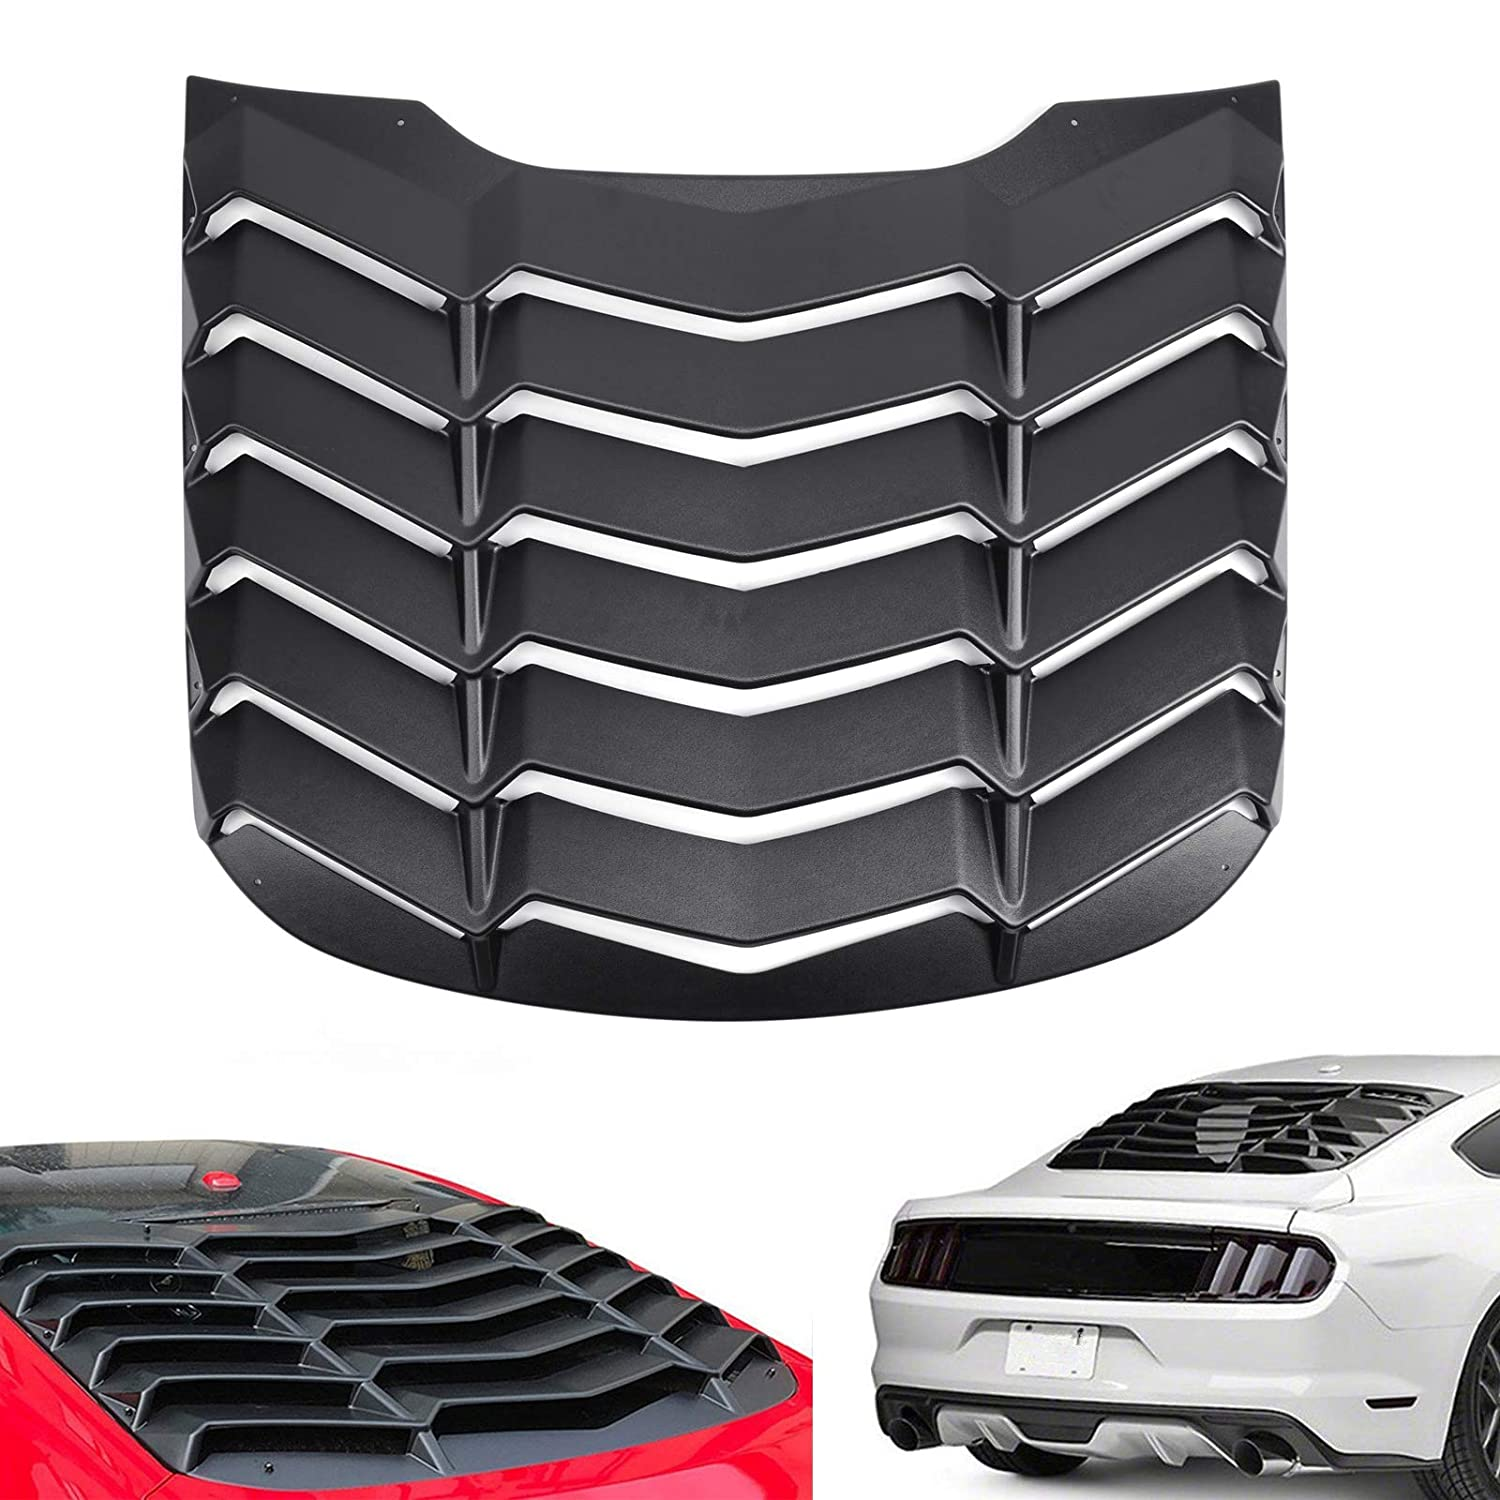 Artudatech Rear Window Louver Windshield Sun Shade Cover Matte Black ABS For Mustang 2015-2018